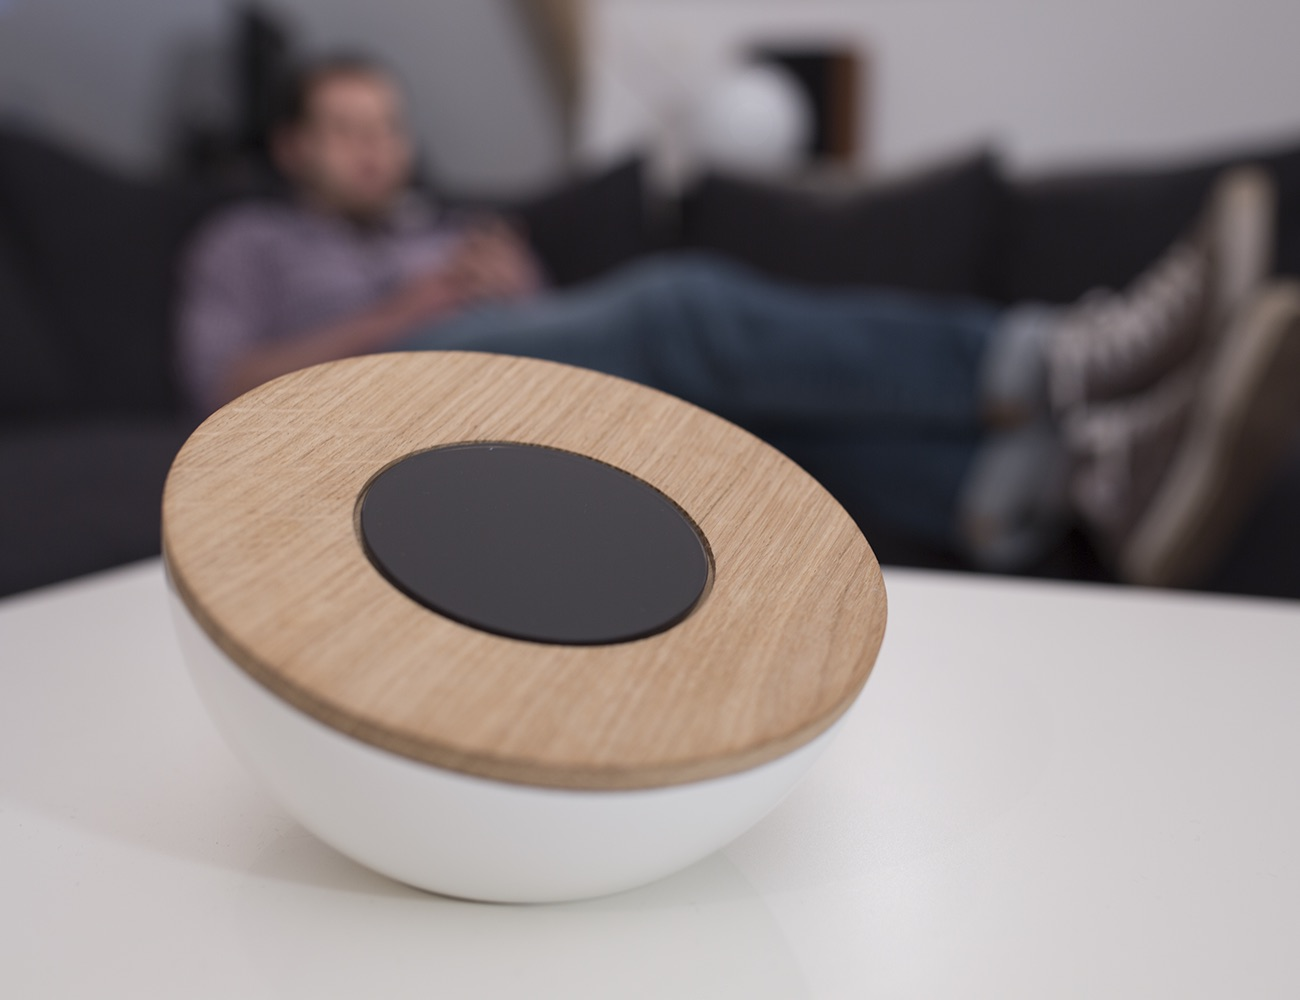 The Smartest Open-Source Router